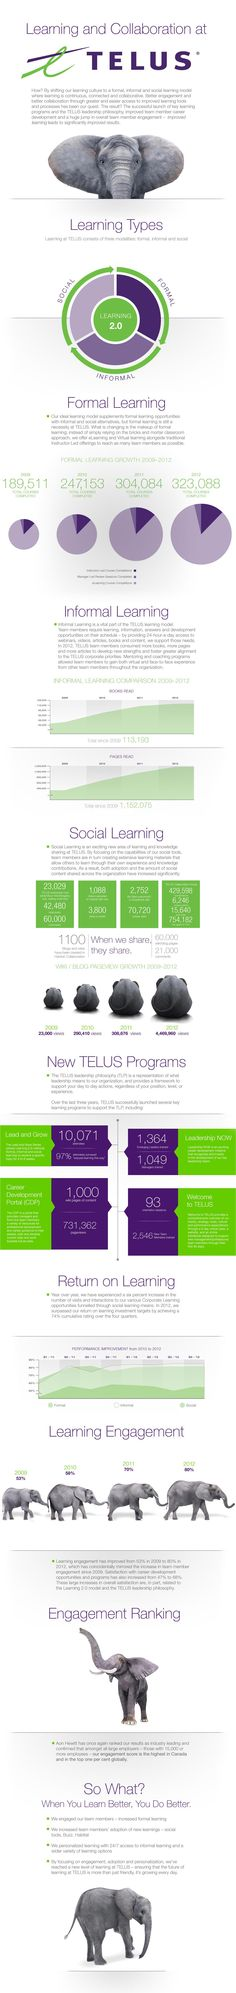 A practical infographic from TELUS.